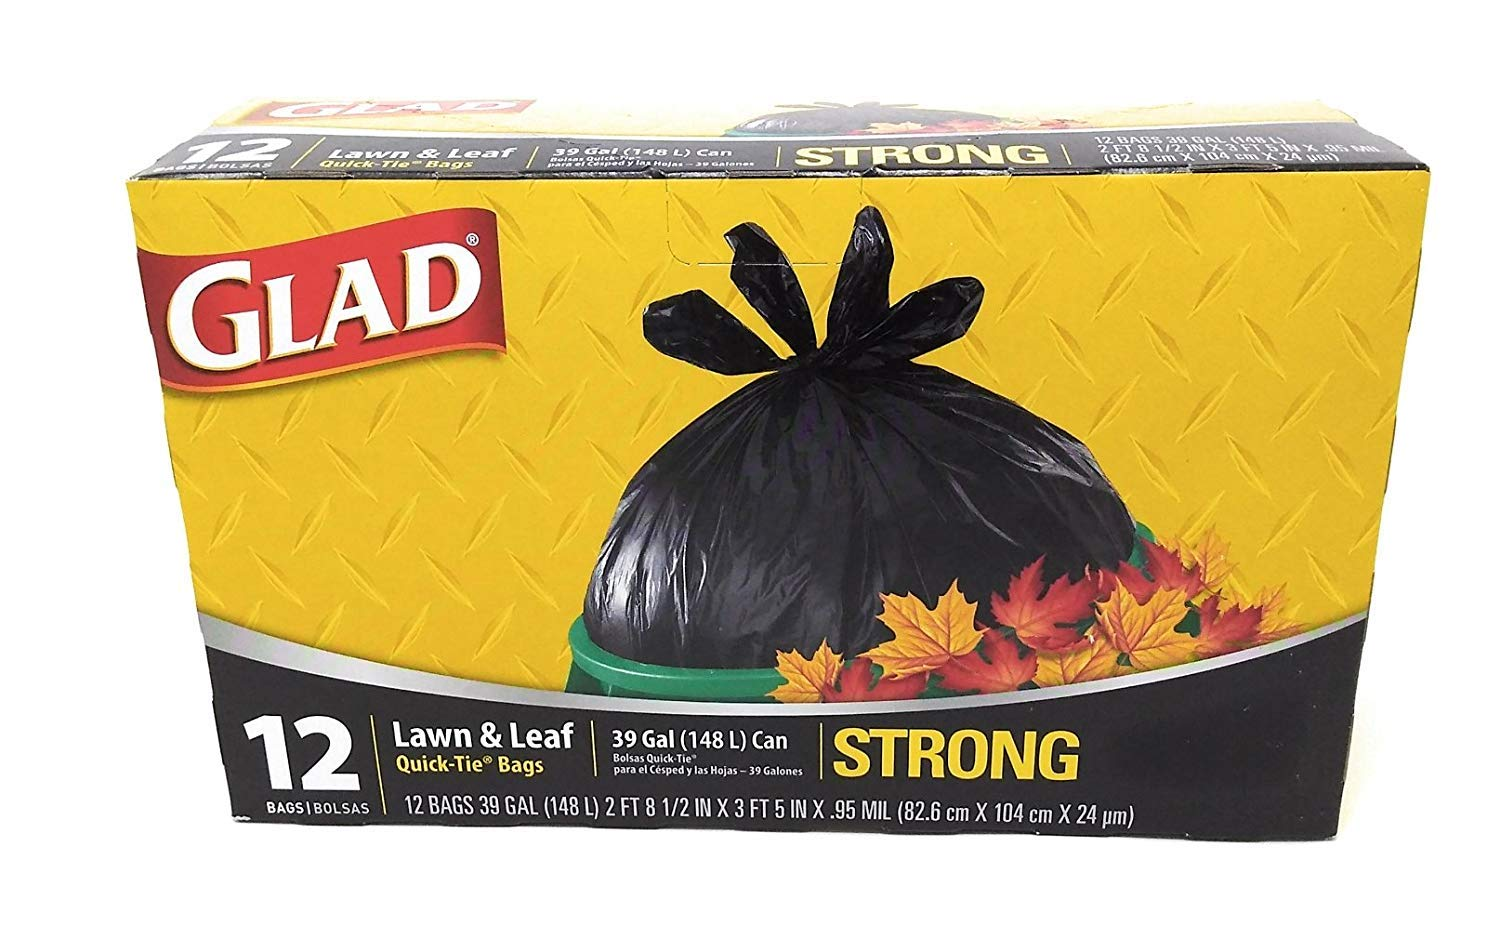 More buying choices for Glad 39 Gallon Quick Tie Lawn & Leaf Bags - 12 Packs by Glad